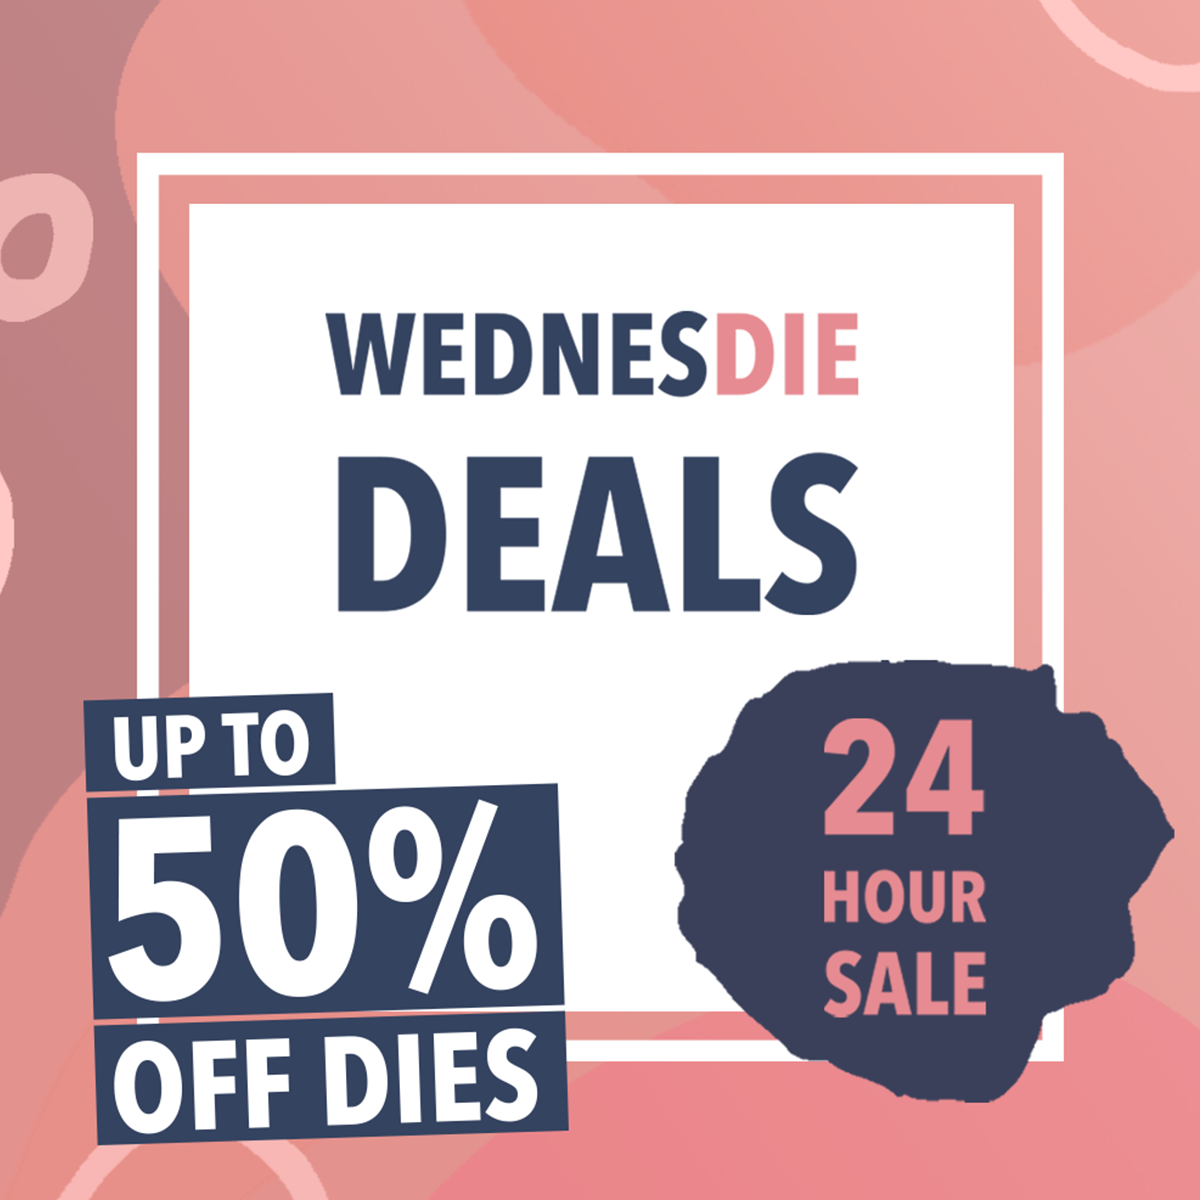 WednesDIE Deals